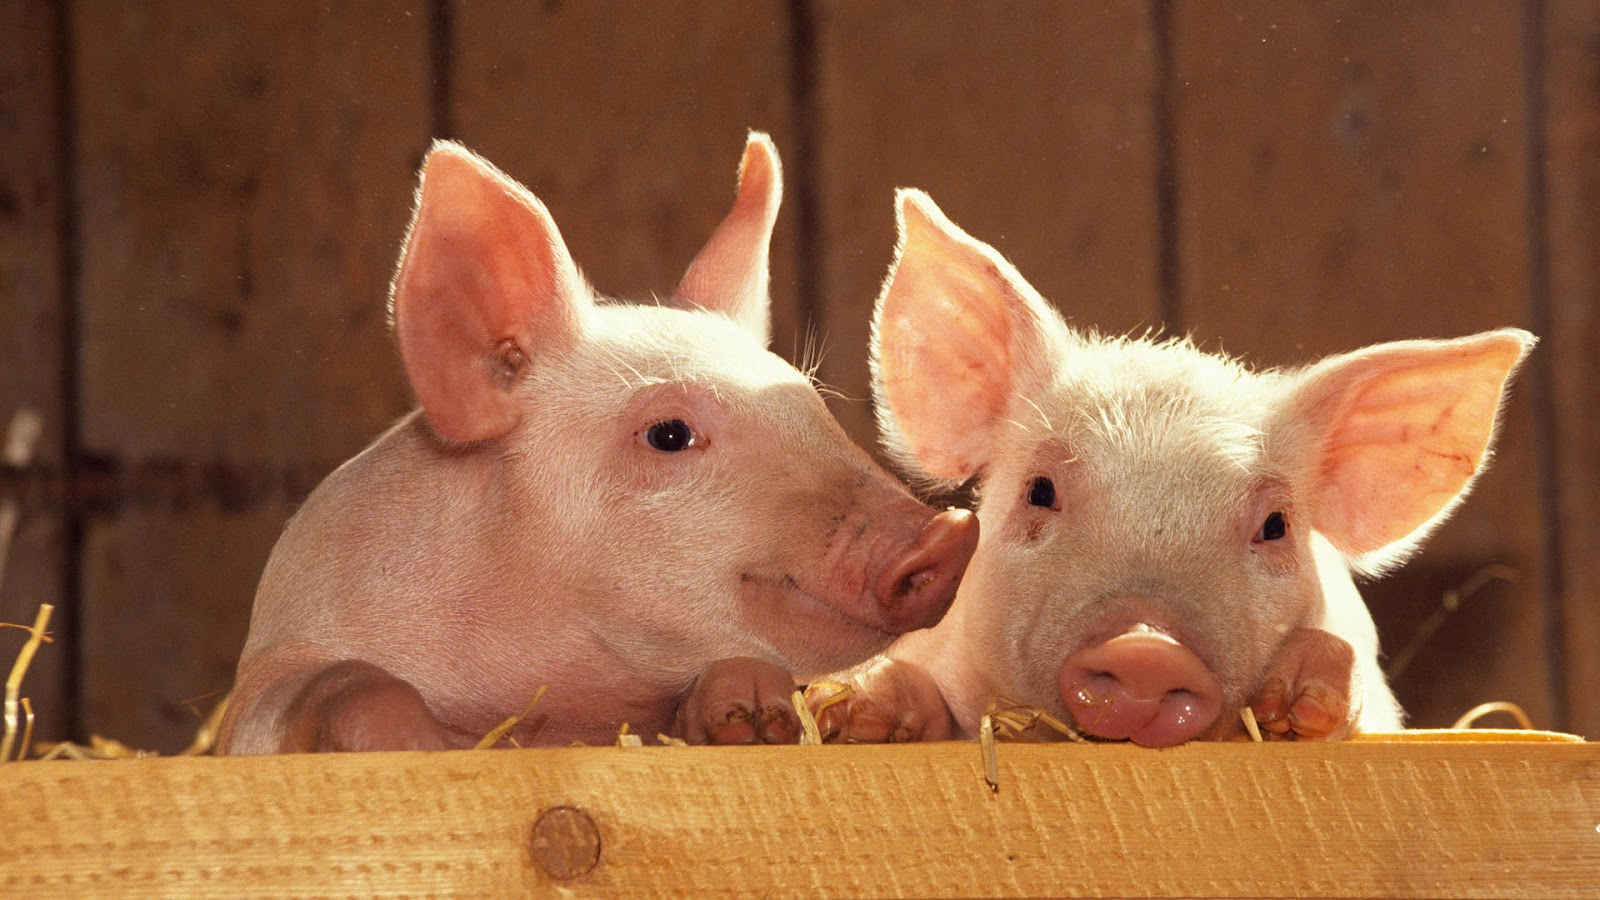 Two cute looking pigs wallpaper HD Animals Wallpapers 1600x900